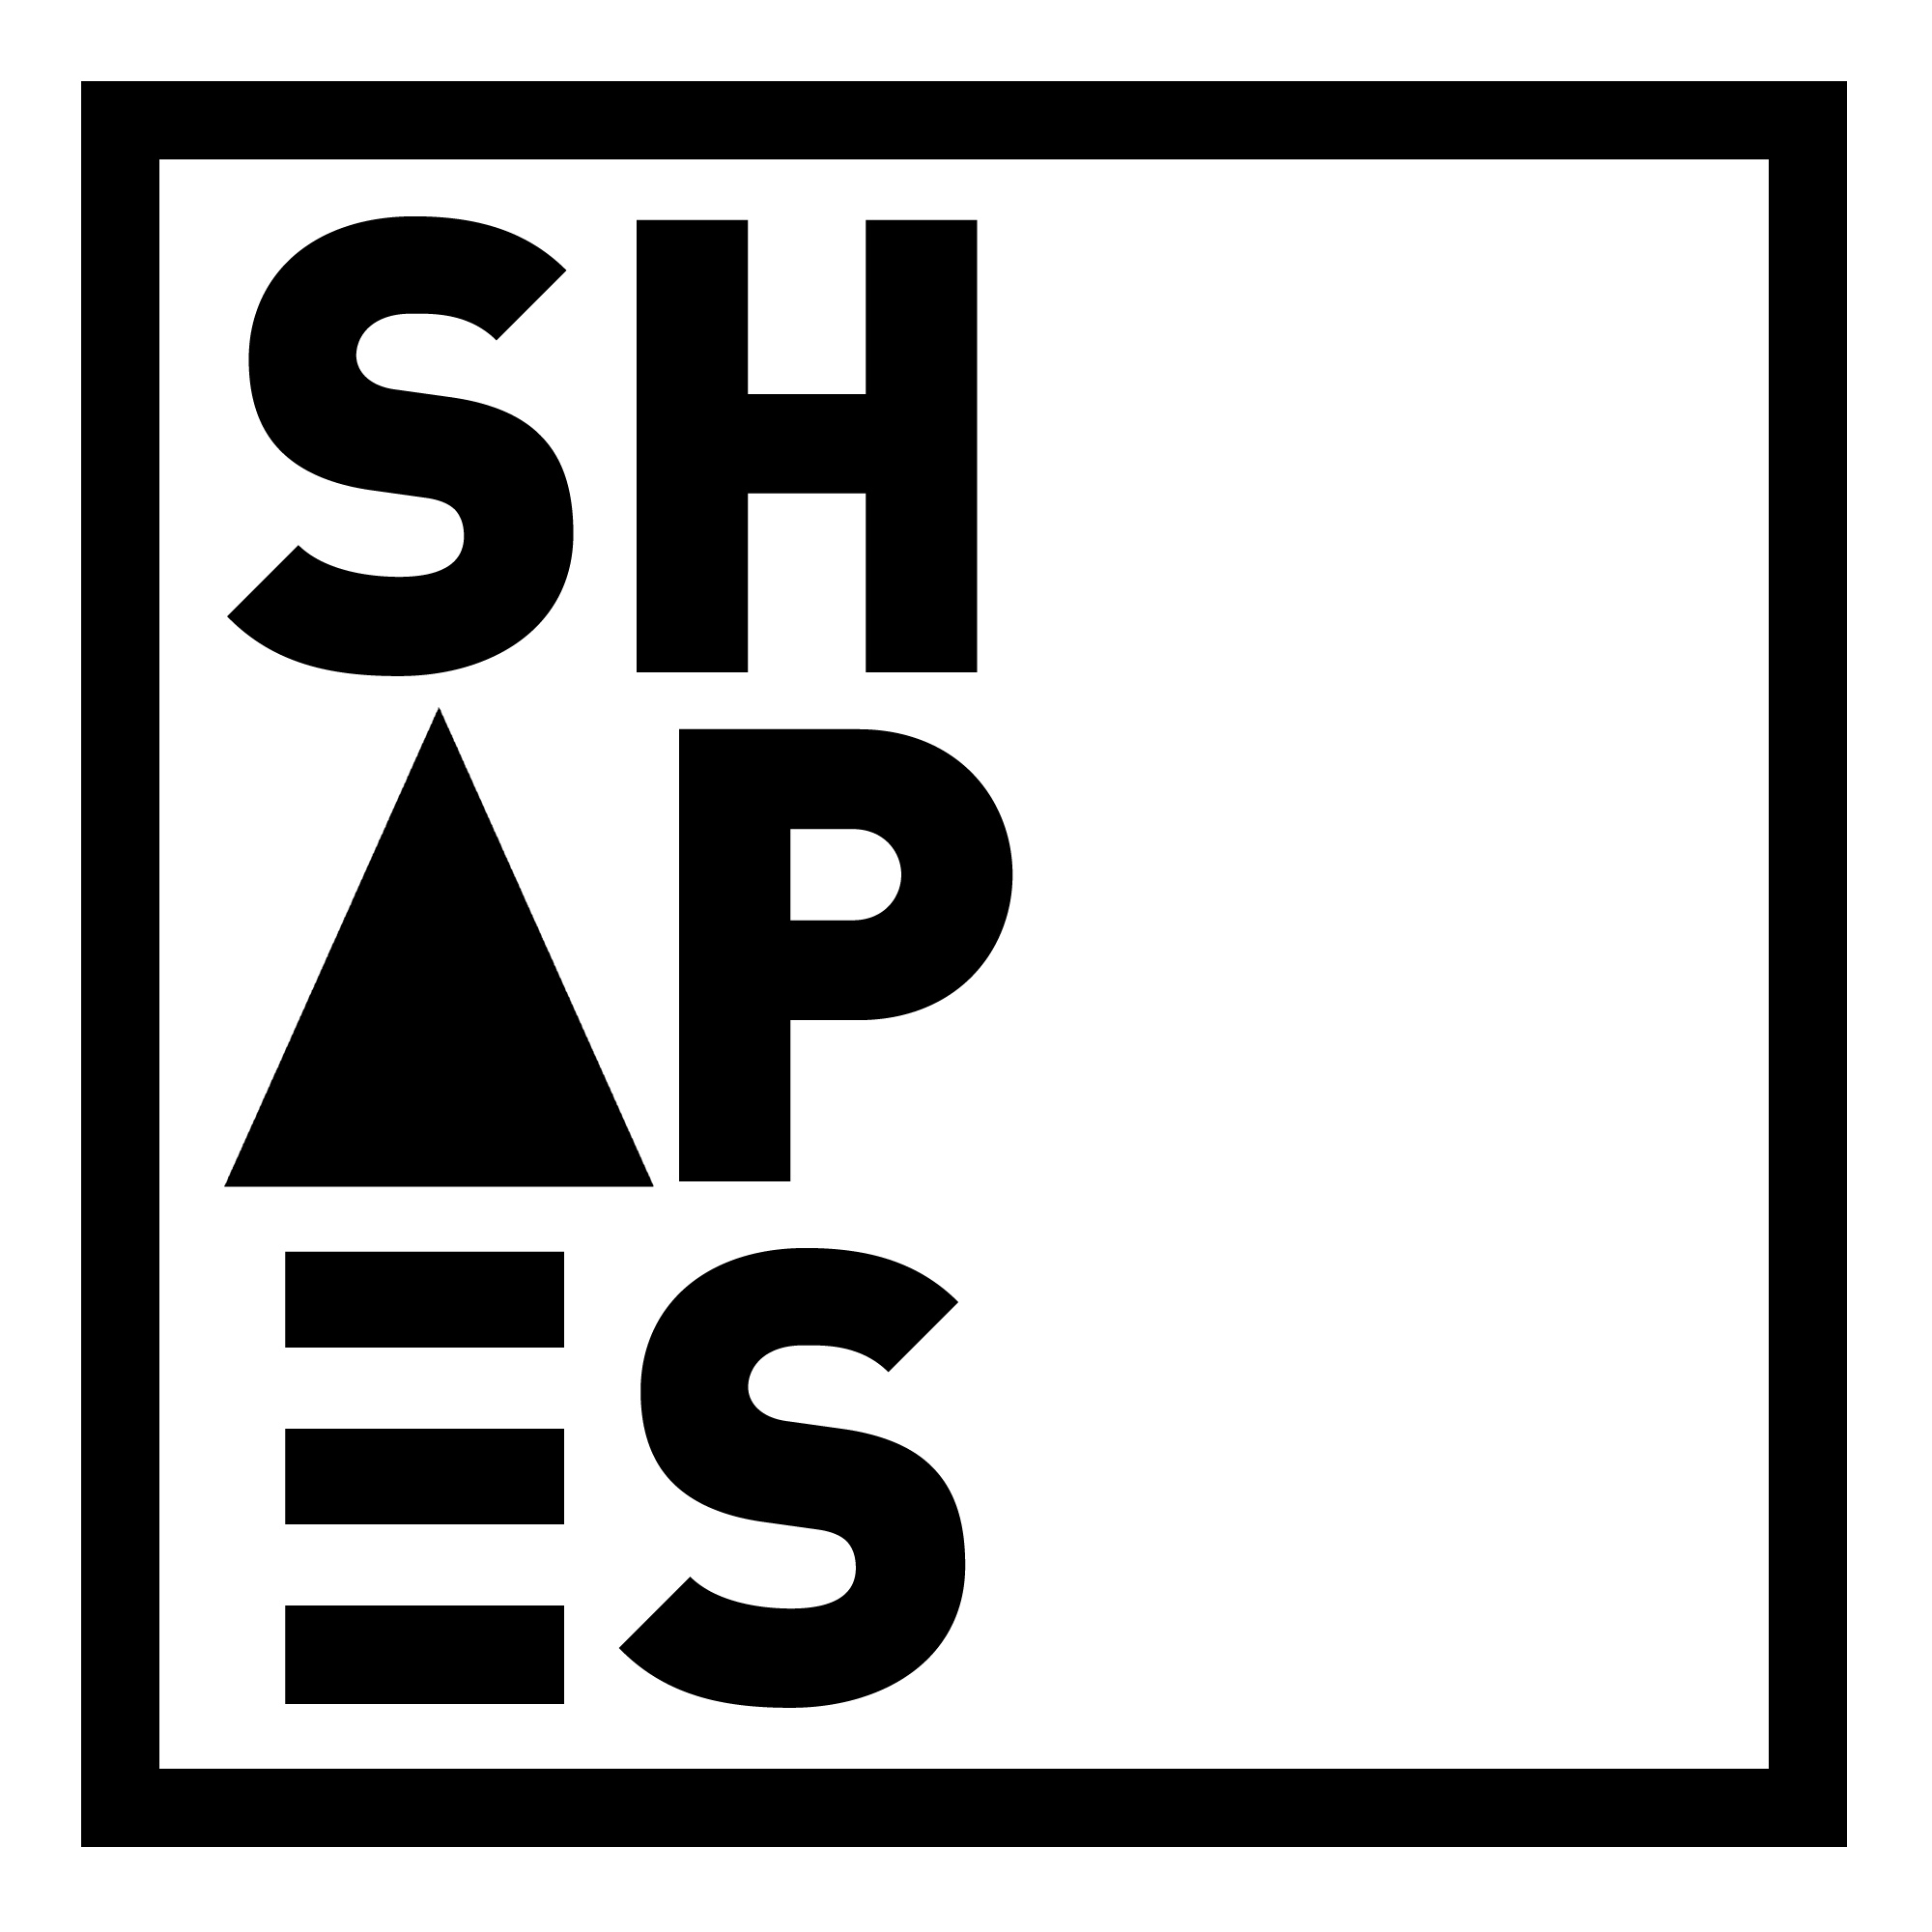 SHAPES LOGO VARIED[2]